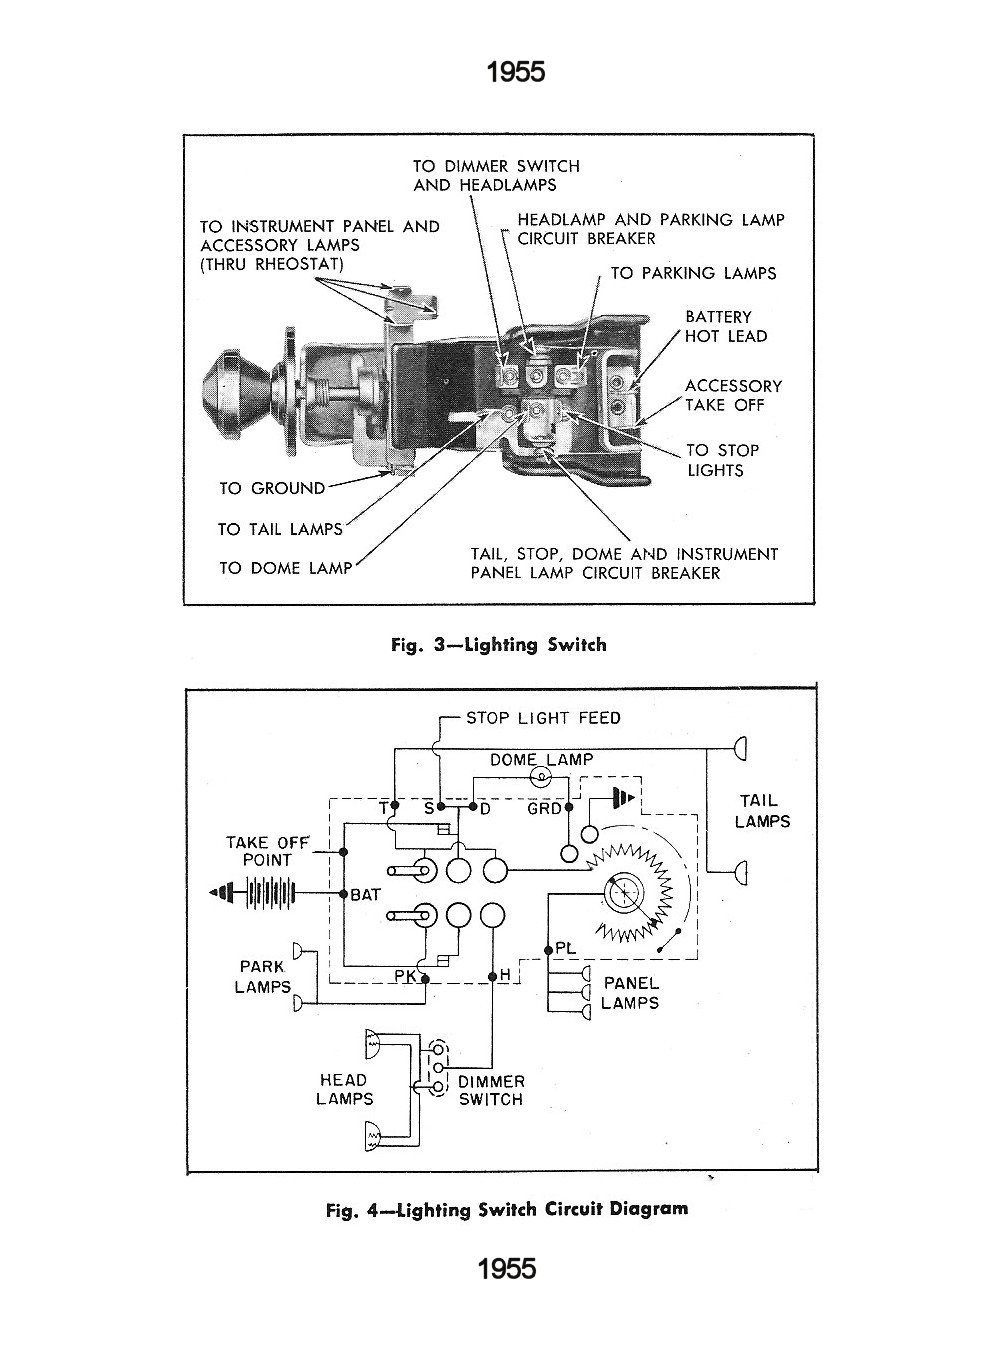 55csm1204a 51 ford headlight switch wiring diagram 51 ford headlight switch 2000 Ford Headlight Switch Wiring Diagram at webbmarketing.co